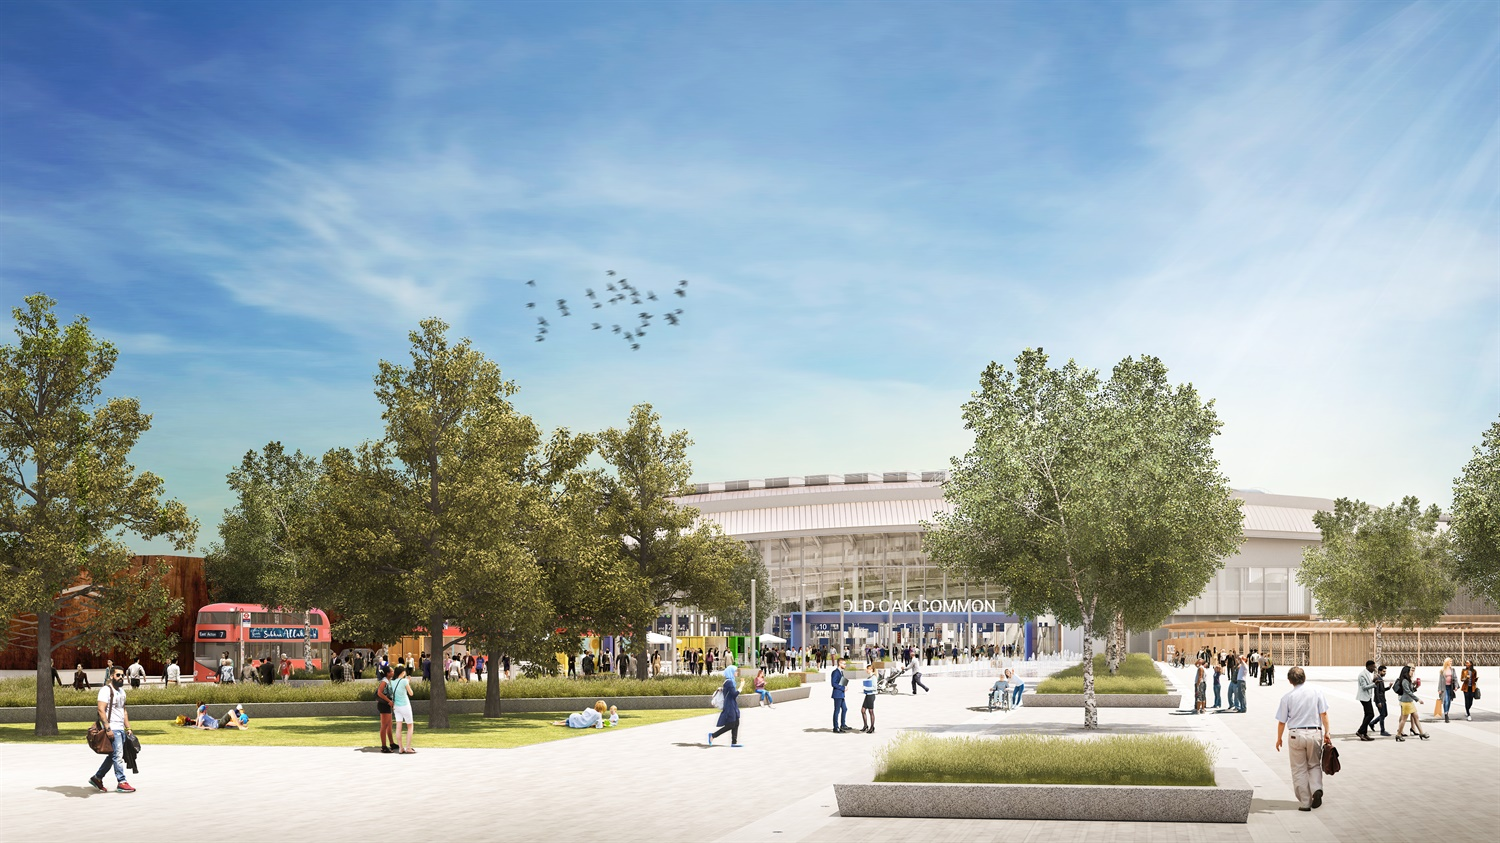 Planning approved for HS2 station set to be largest newly built station